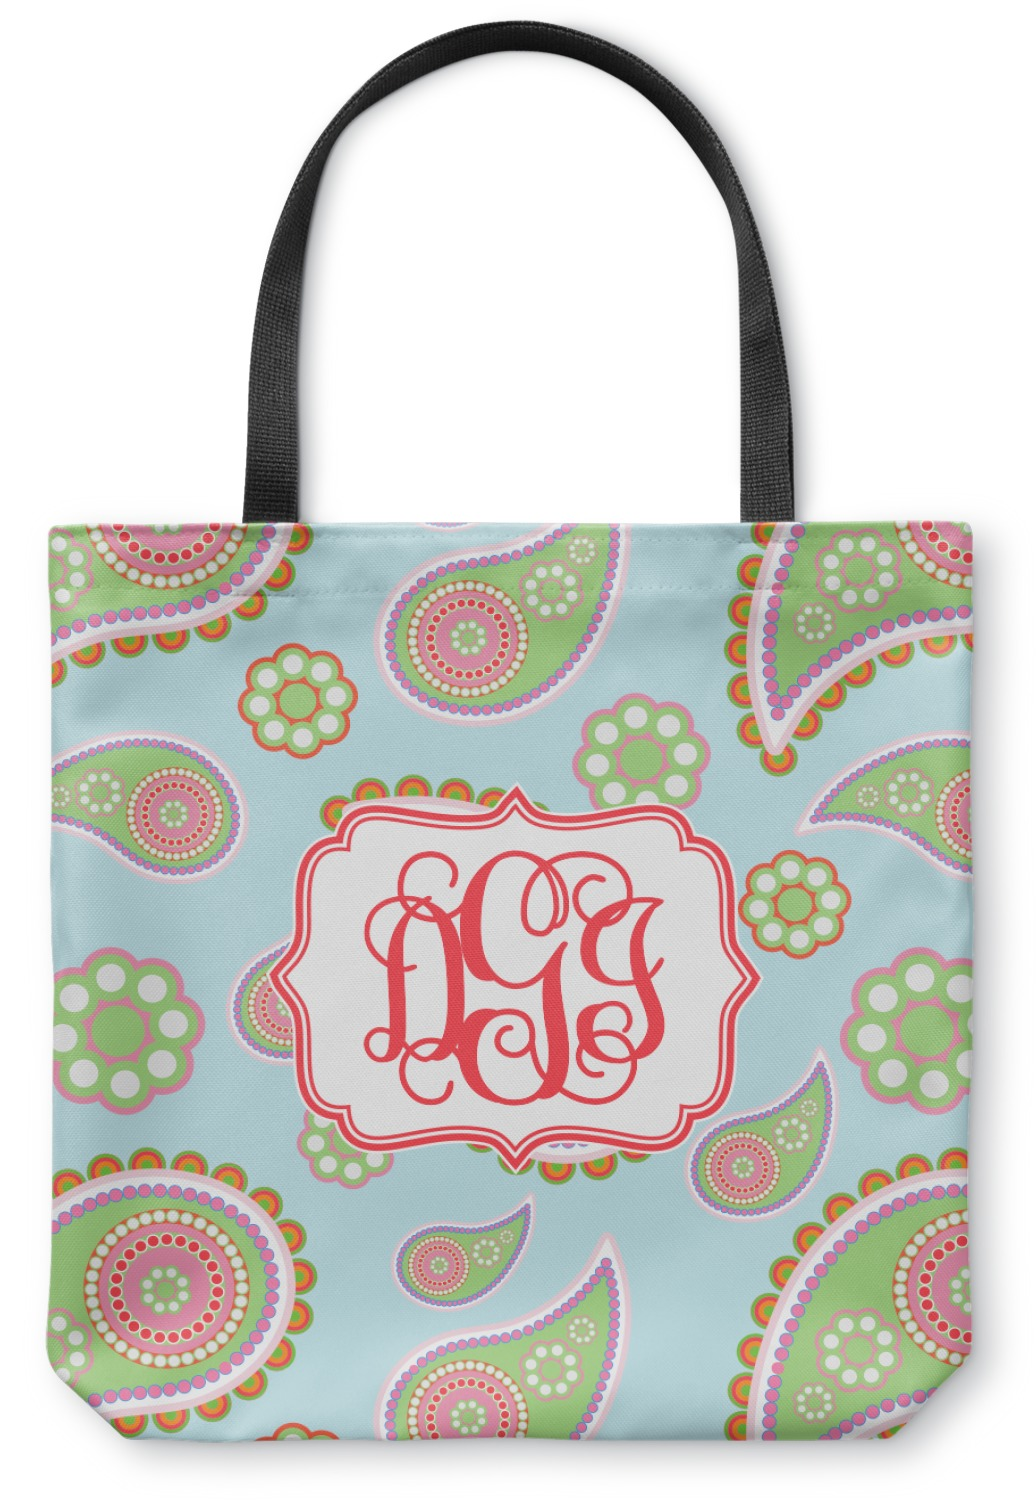 9f35bed4dea Blue Paisley Canvas Tote Bag (Personalized)